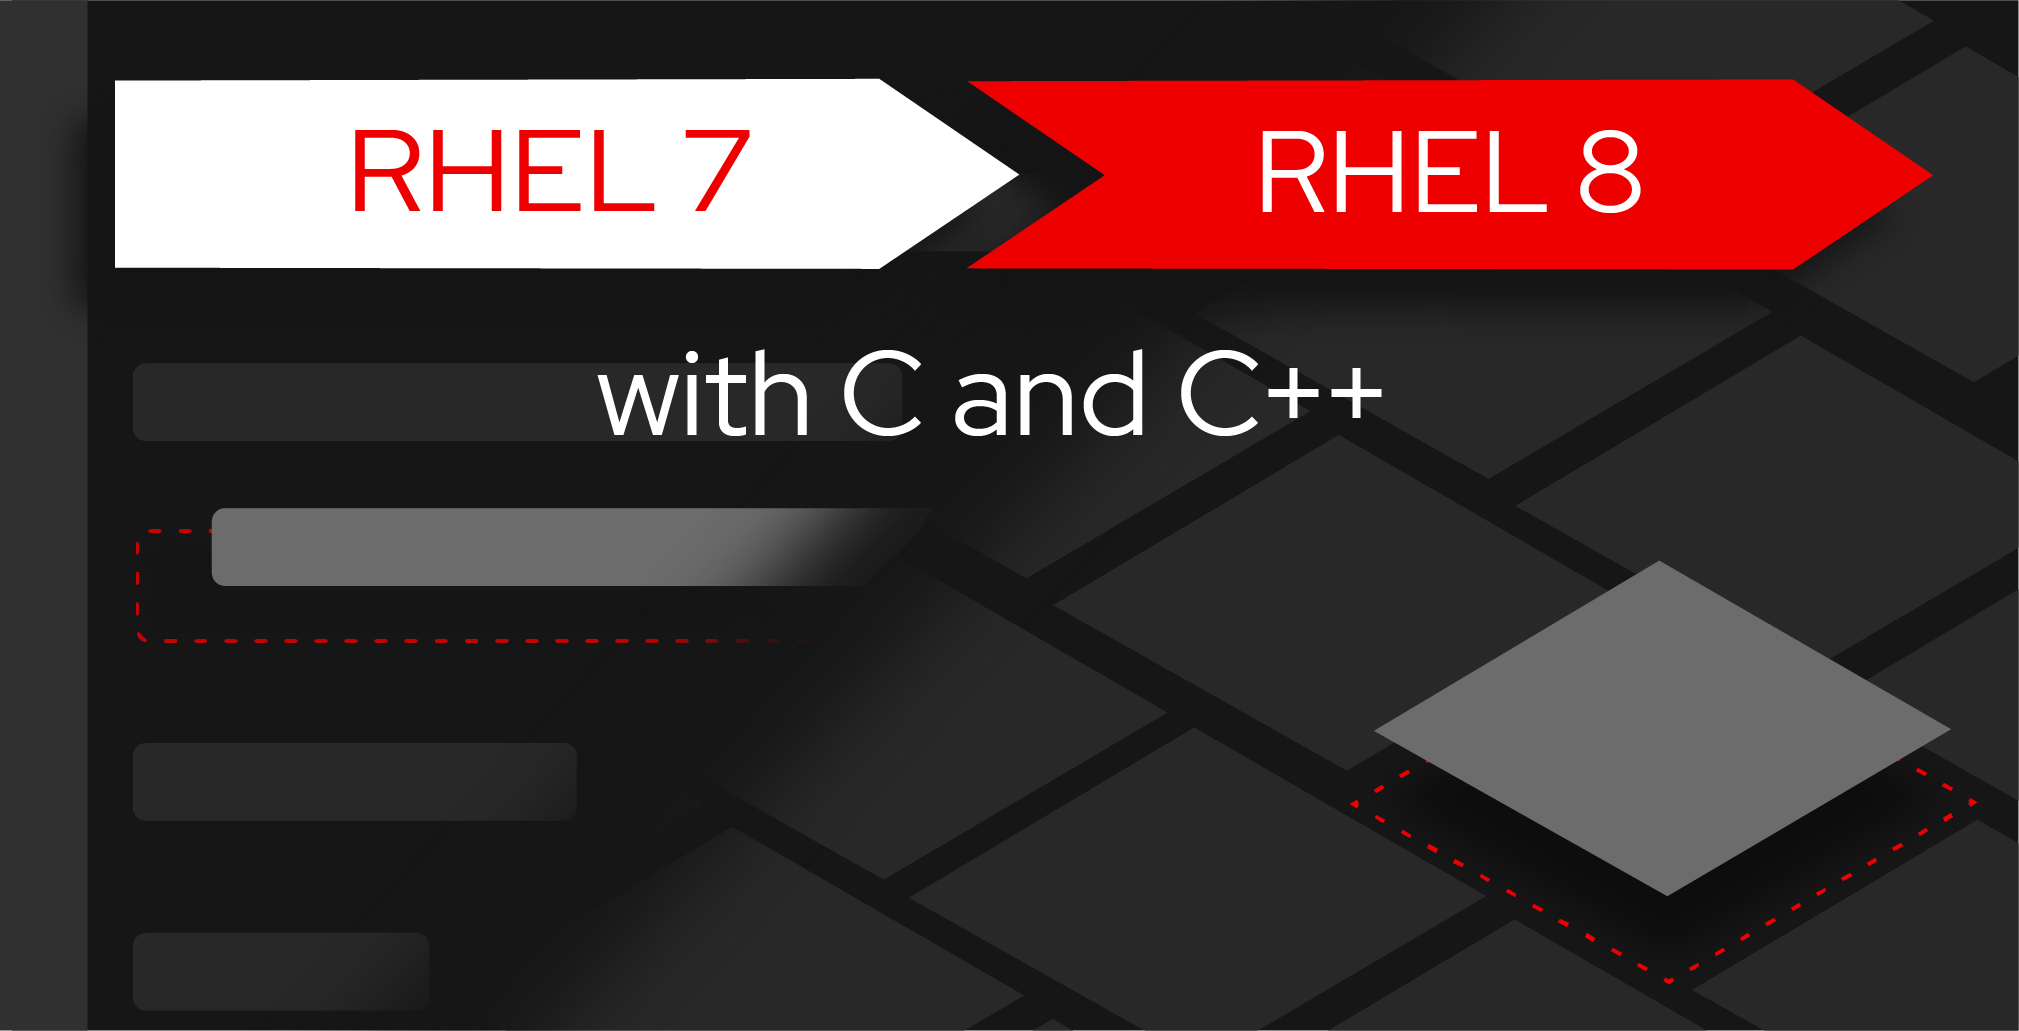 Migrating C and C++ applications from Red Hat Enterprise Linux version 7 to version 8